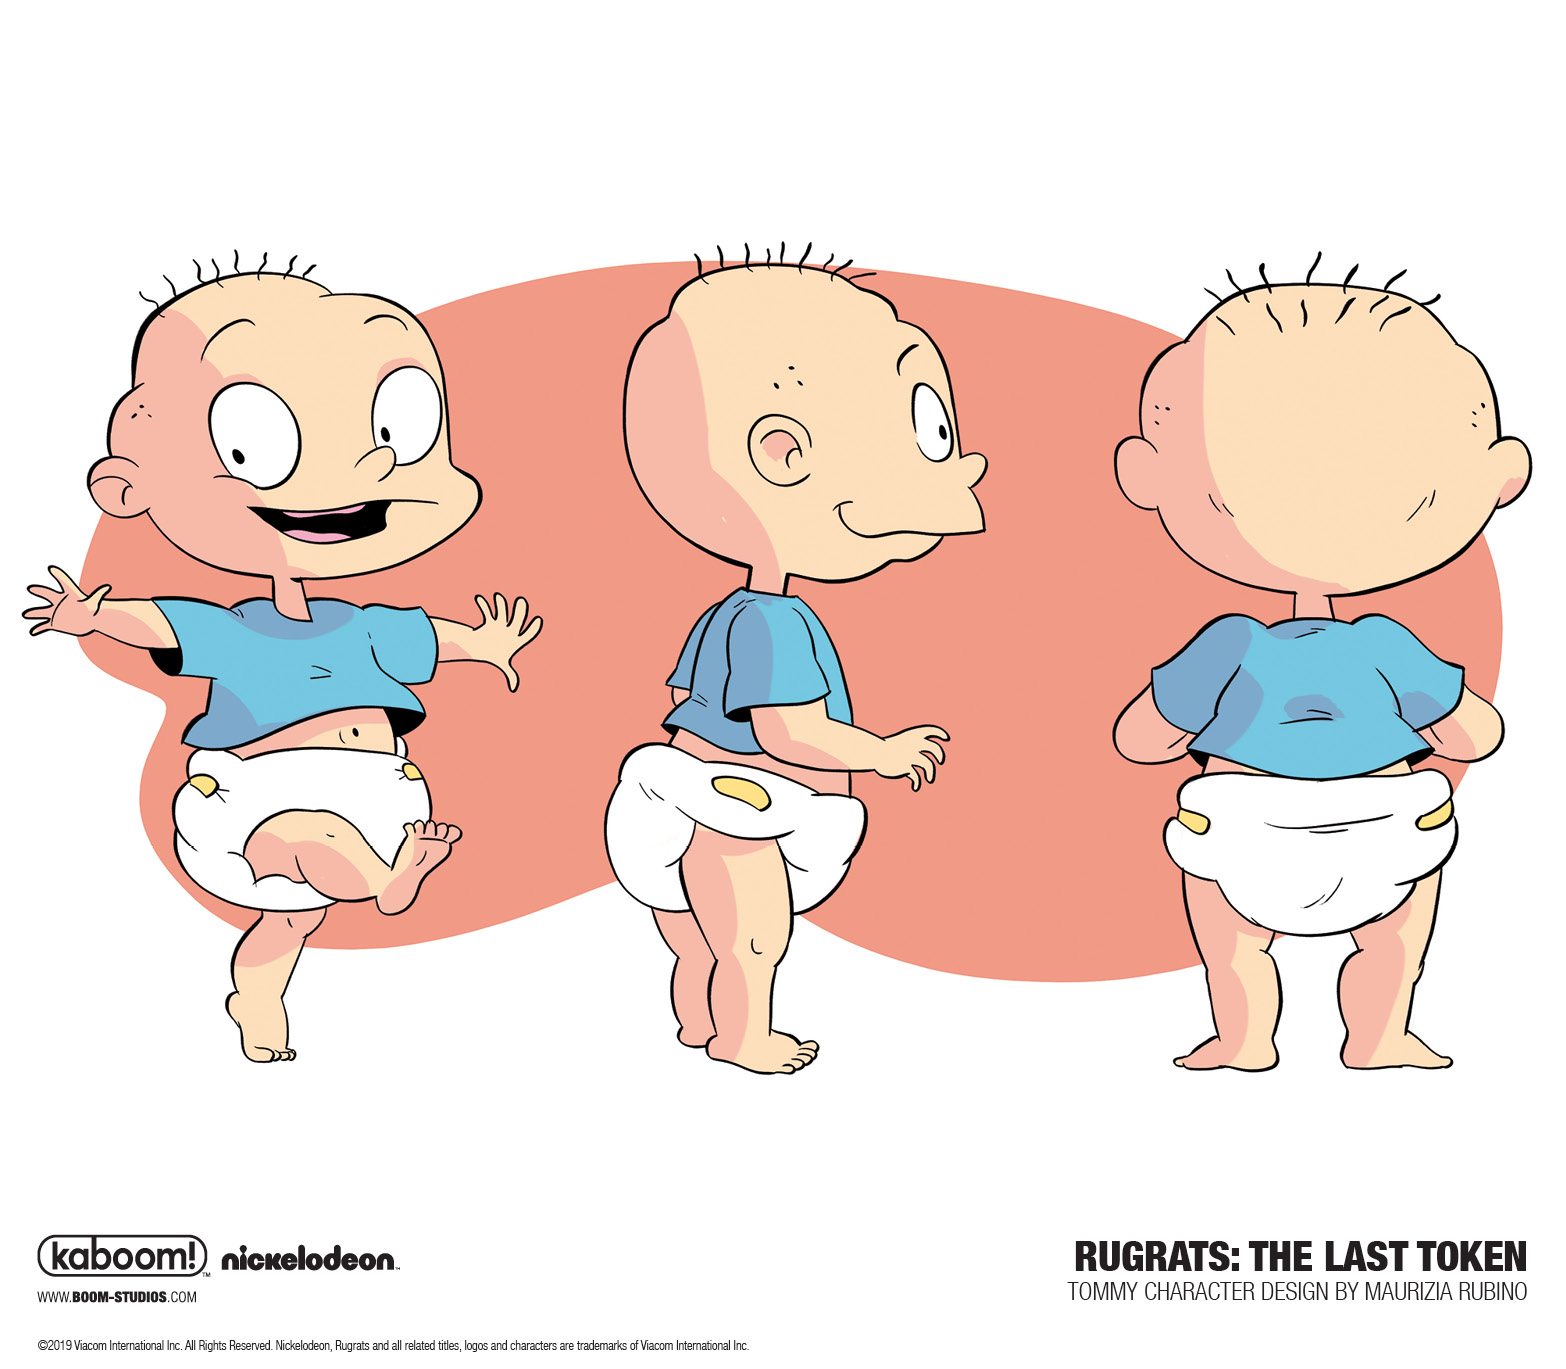 Rugrats_LastToken_CharaterDesign_Tommy_PROMO.jpg